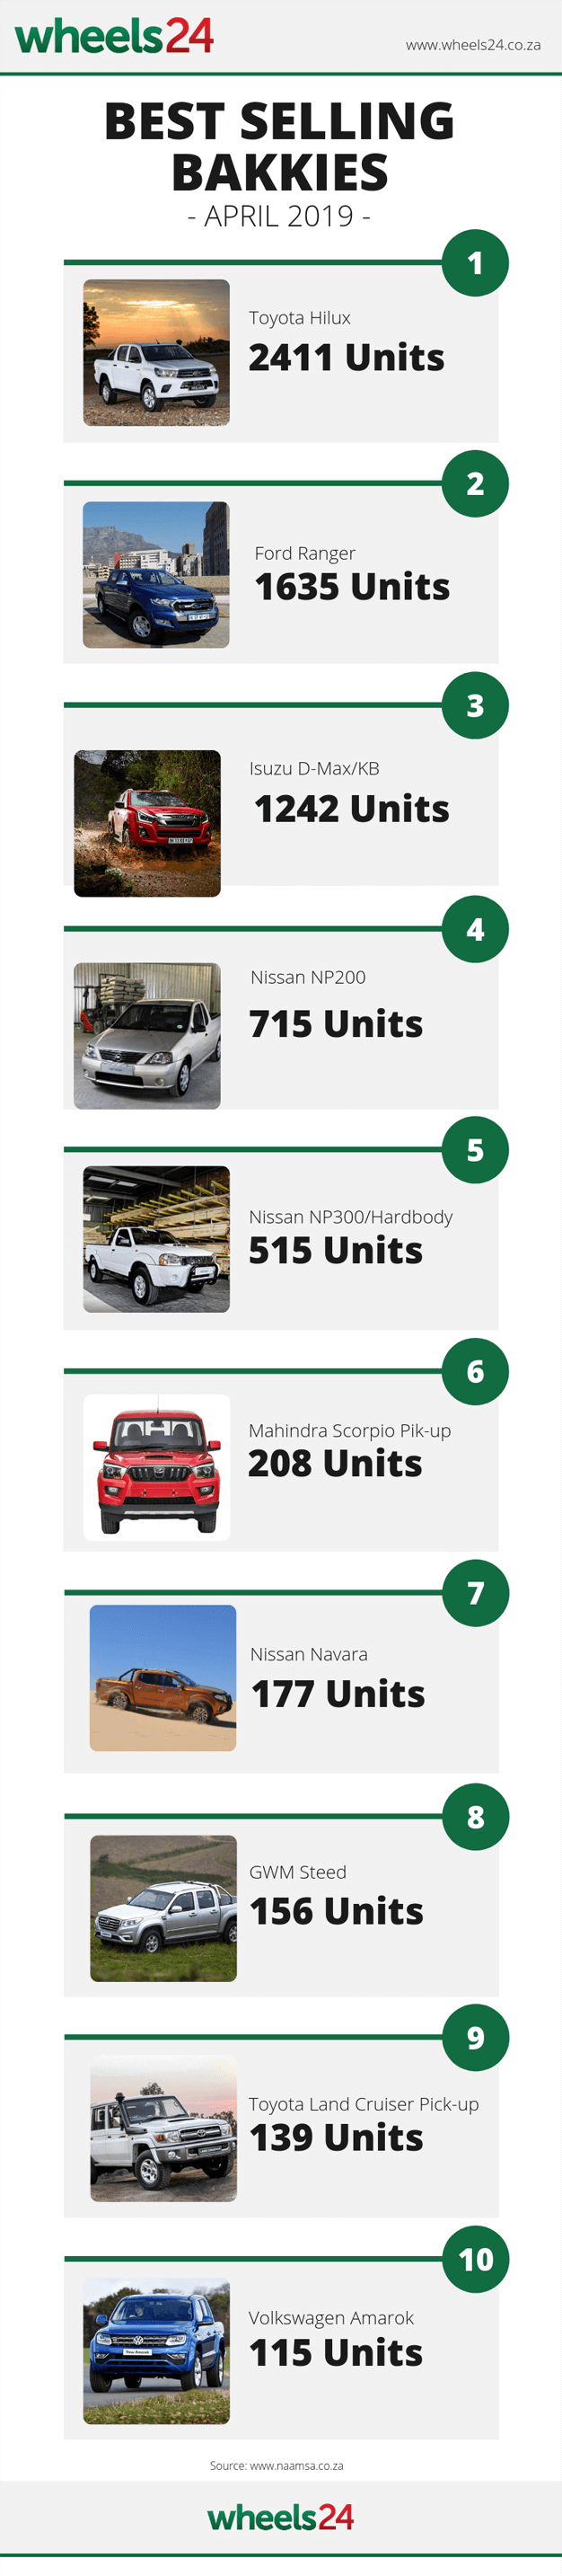 new vehicle sales,bakkie